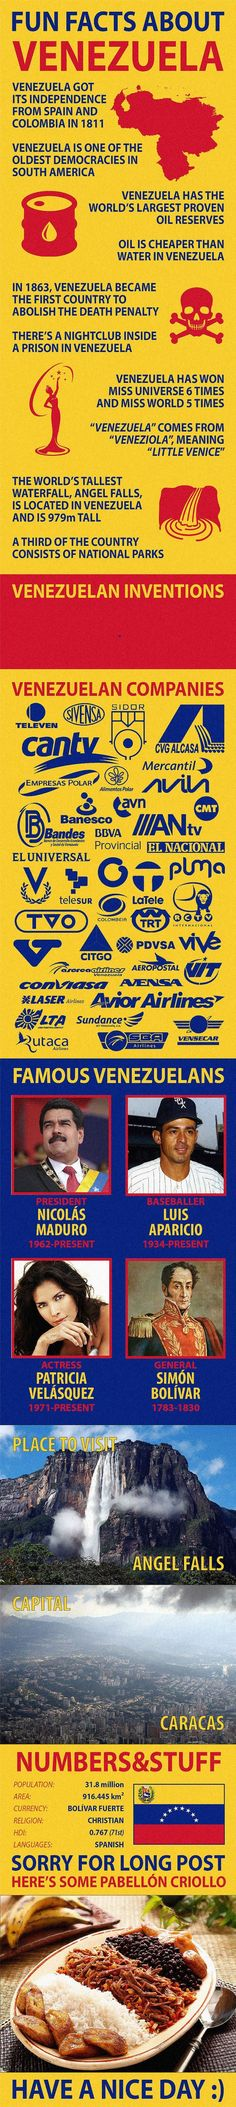 Fun Facts about Venezuela #culturetravelcountry